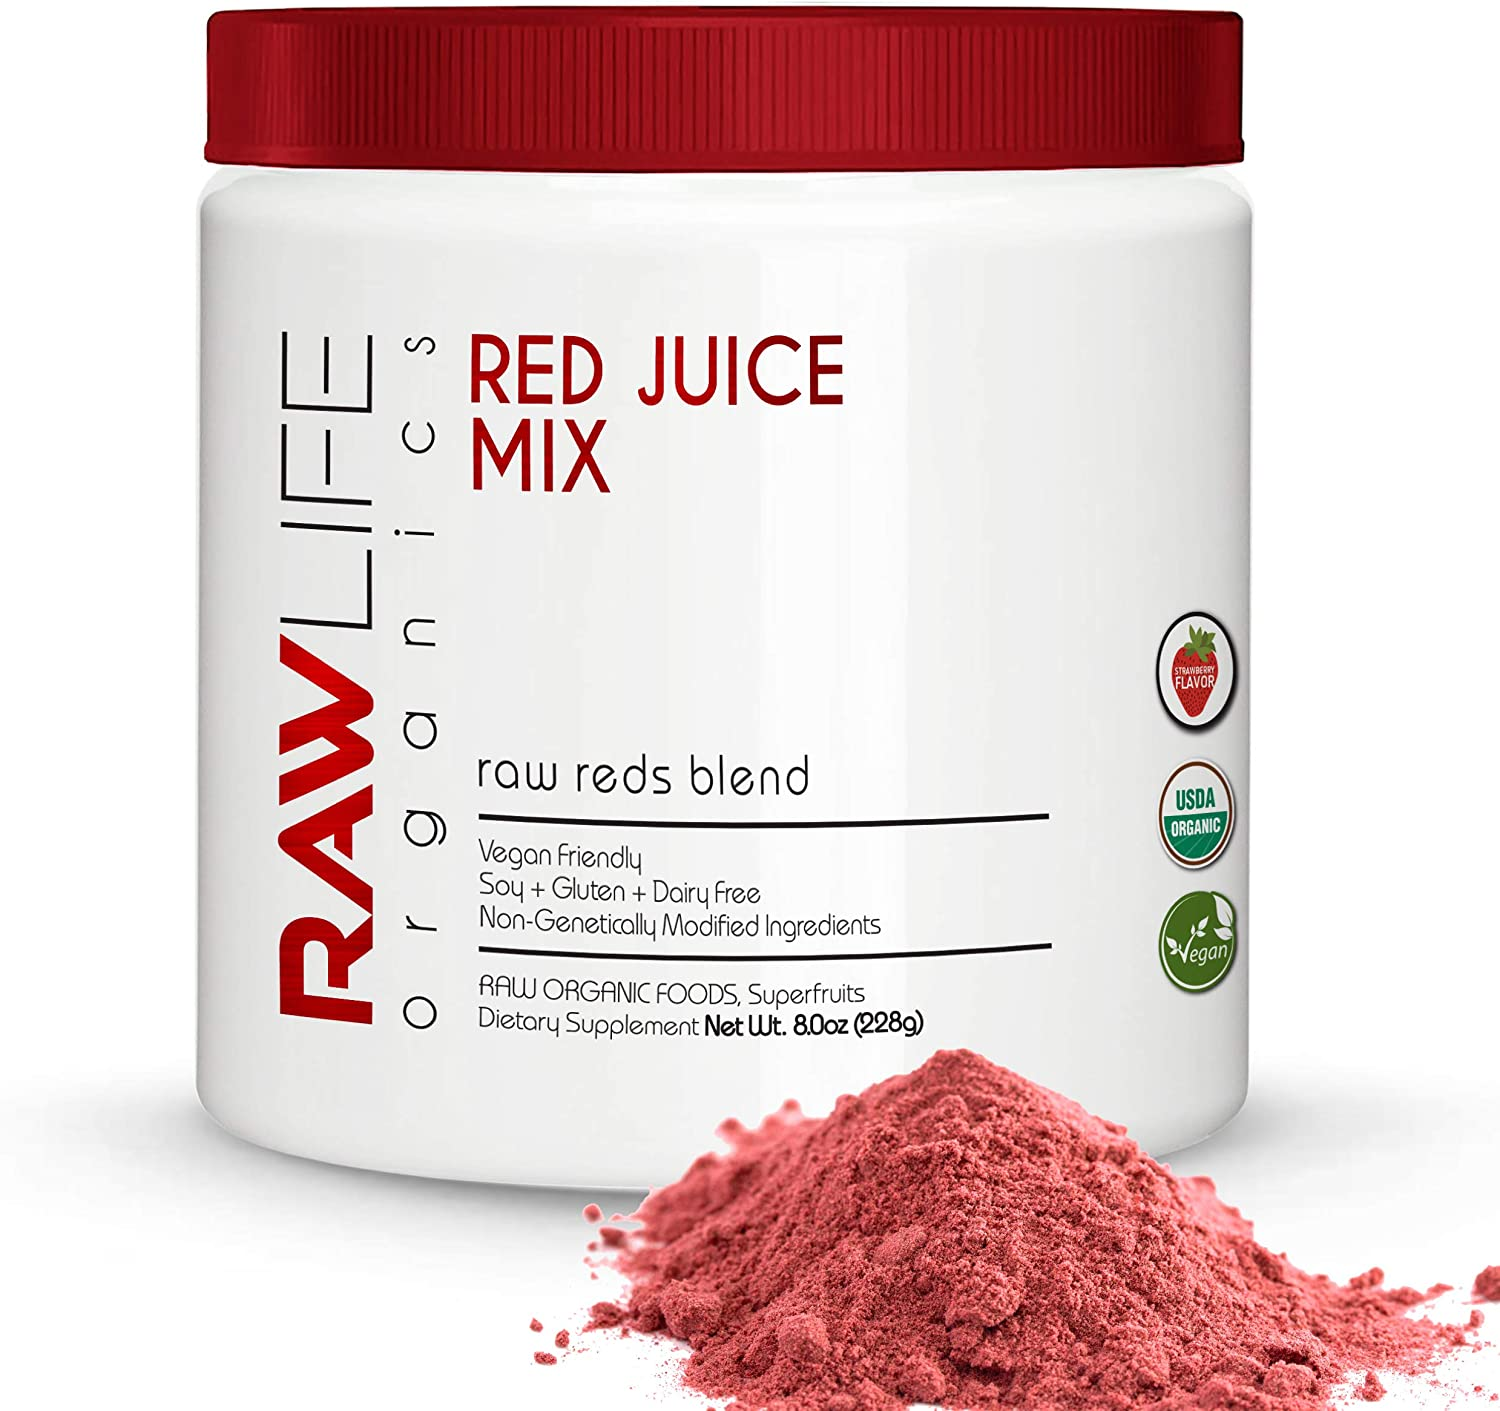 Raw Life Organics Reds Juice Powder - 30 Day Supply - Delicious Super Food with Antioxidants - Increase Vibrance - Gain Maximum Performance - Immunity Support